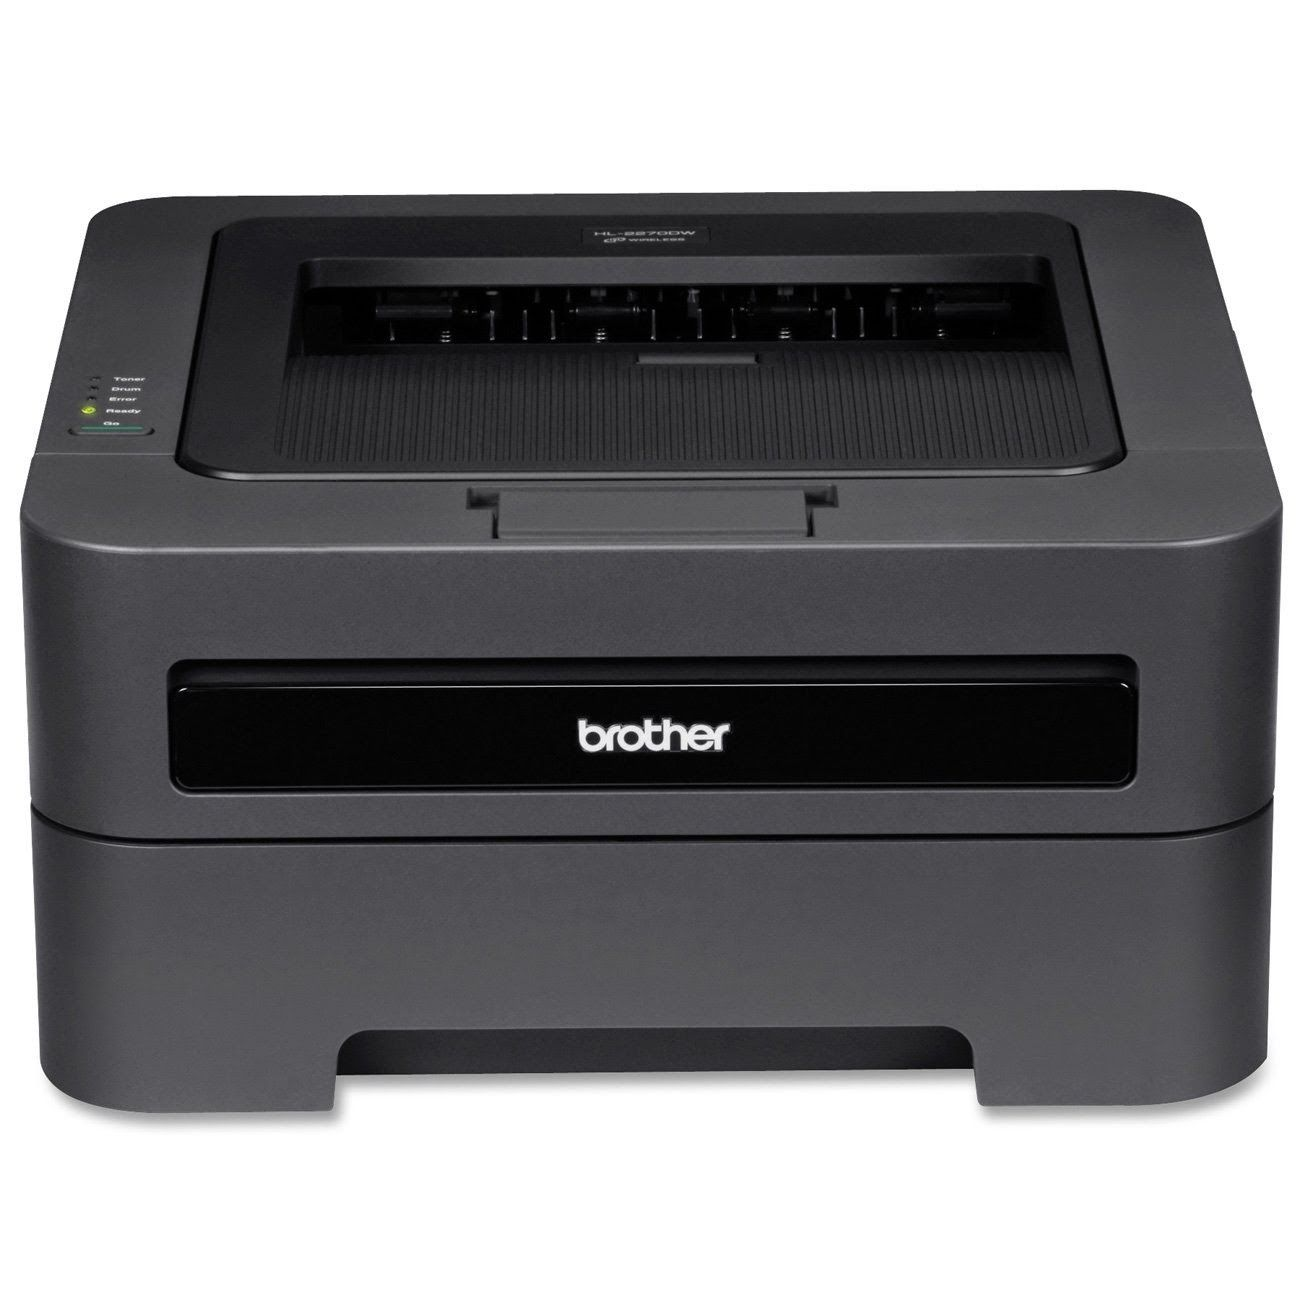 All In One Color Laser Printer Reviews Brother Hl 2270dw Compact Laser Printer Wireless Printer Laser Printer Brother Printers